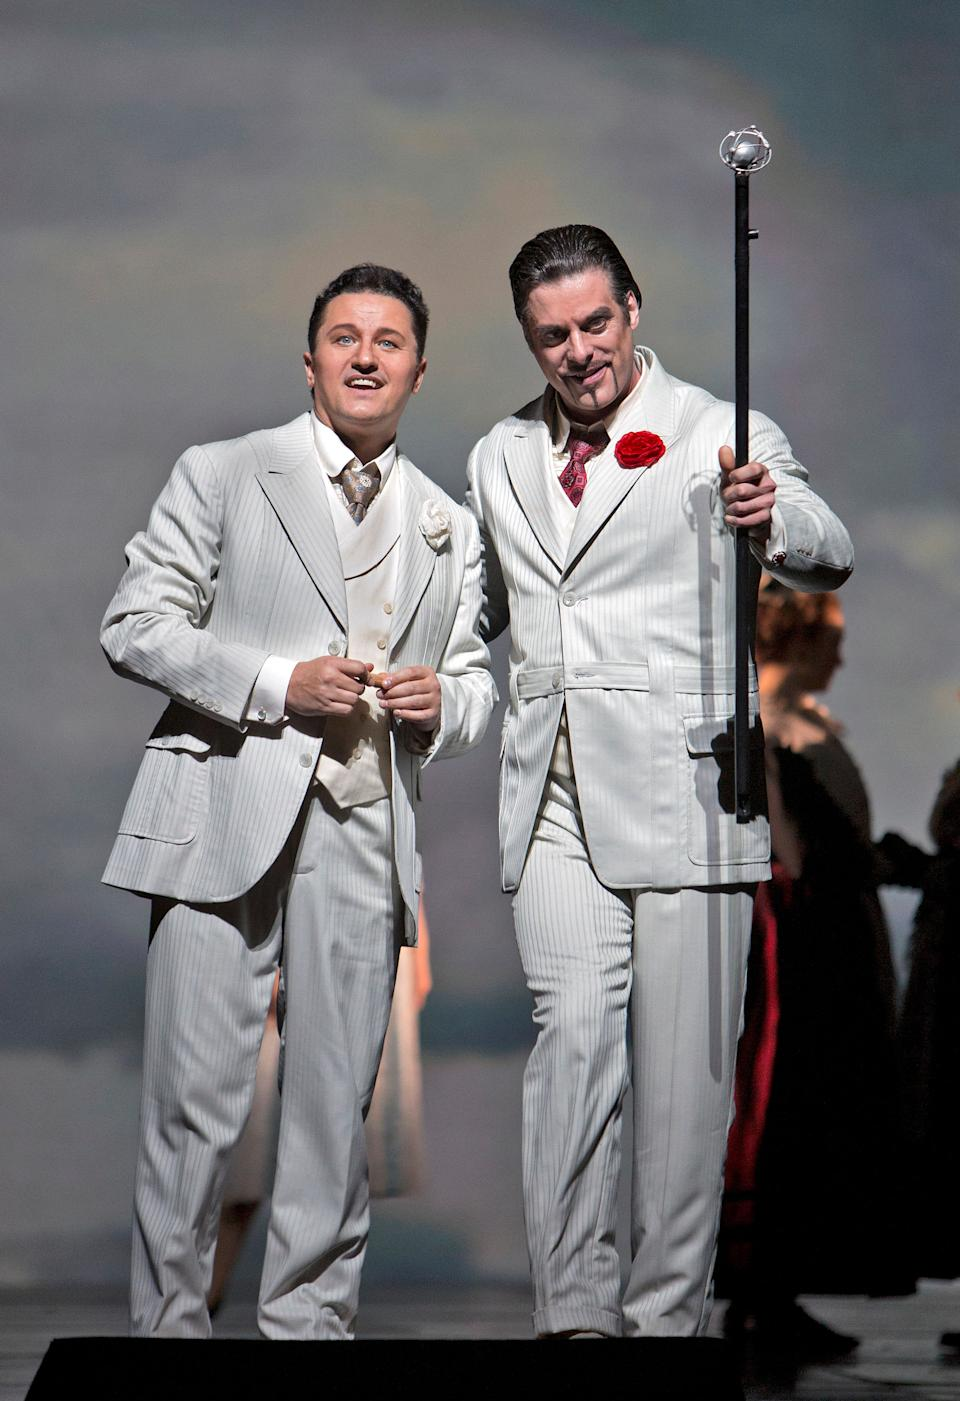 "In this March 18, 2013 photo provided by the Metropolitan Opera, Piotr Beczala is Faust and John Relyea is Méphistophélès during a dress rehearsal of ""Faust"" at the Metropolitan Opera in New York. (AP Photo/Metropolitan Opera, Cory Weaver)"